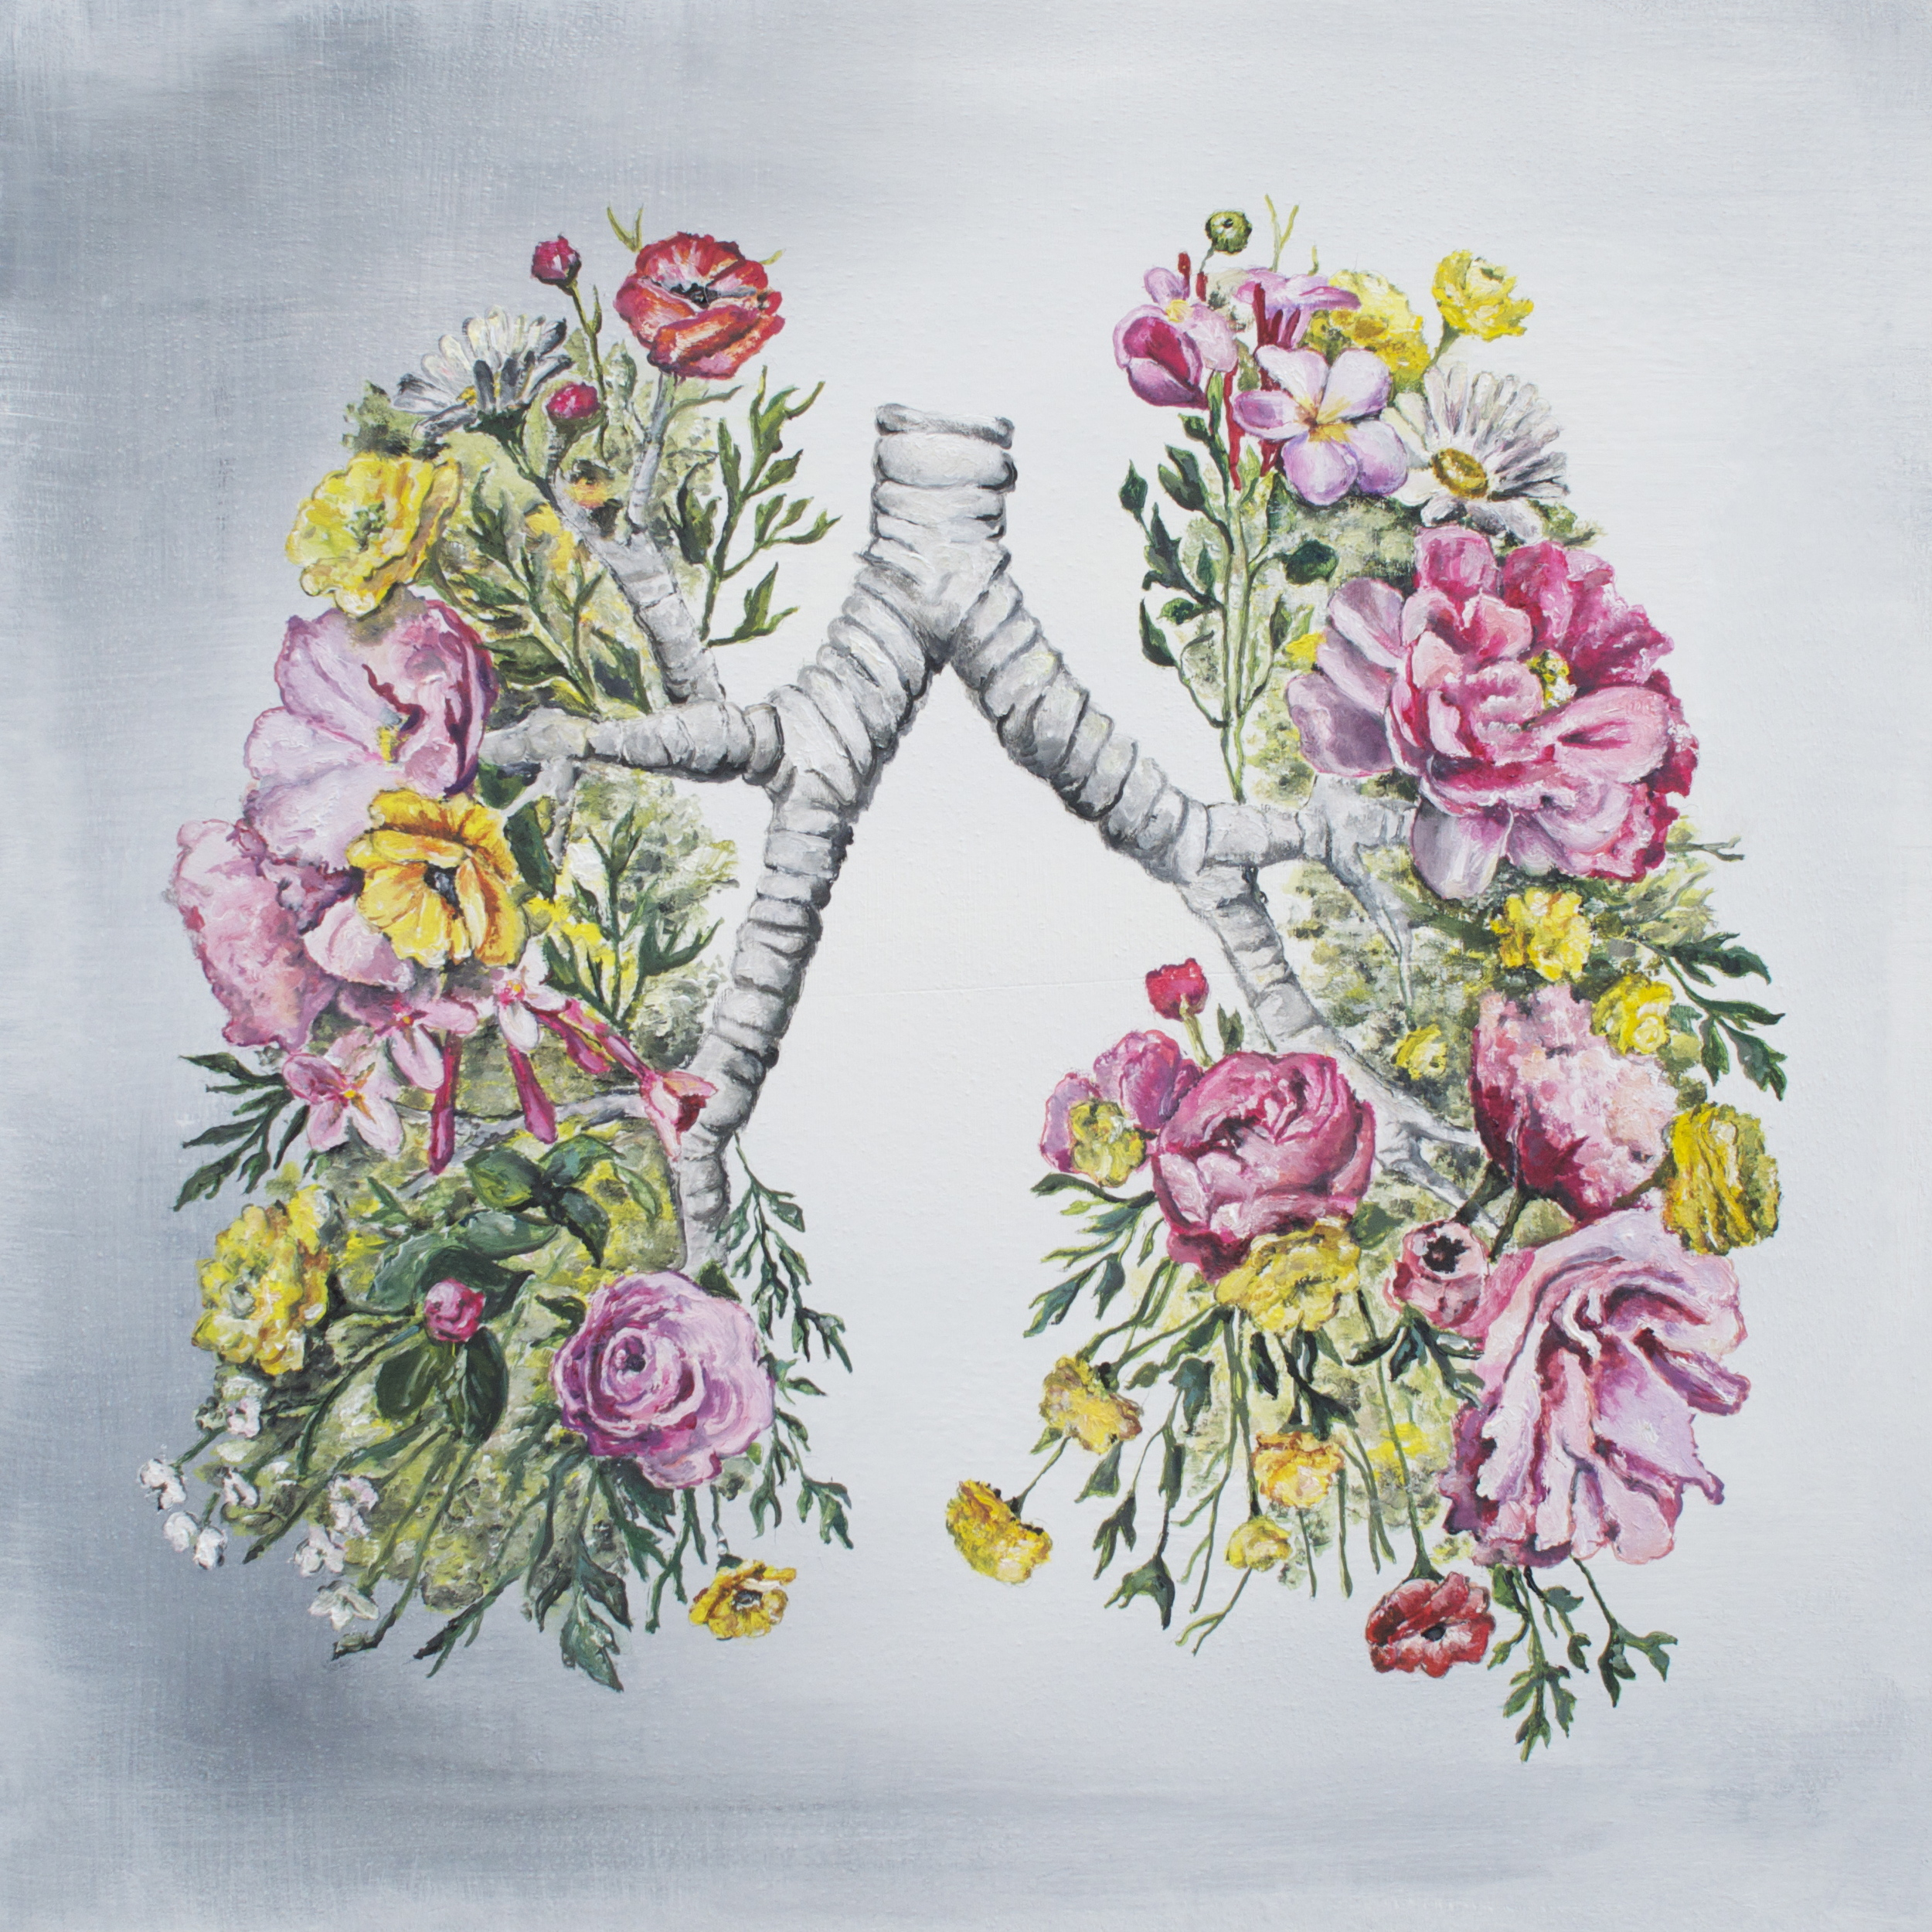 Floral Anatomy: Lungs